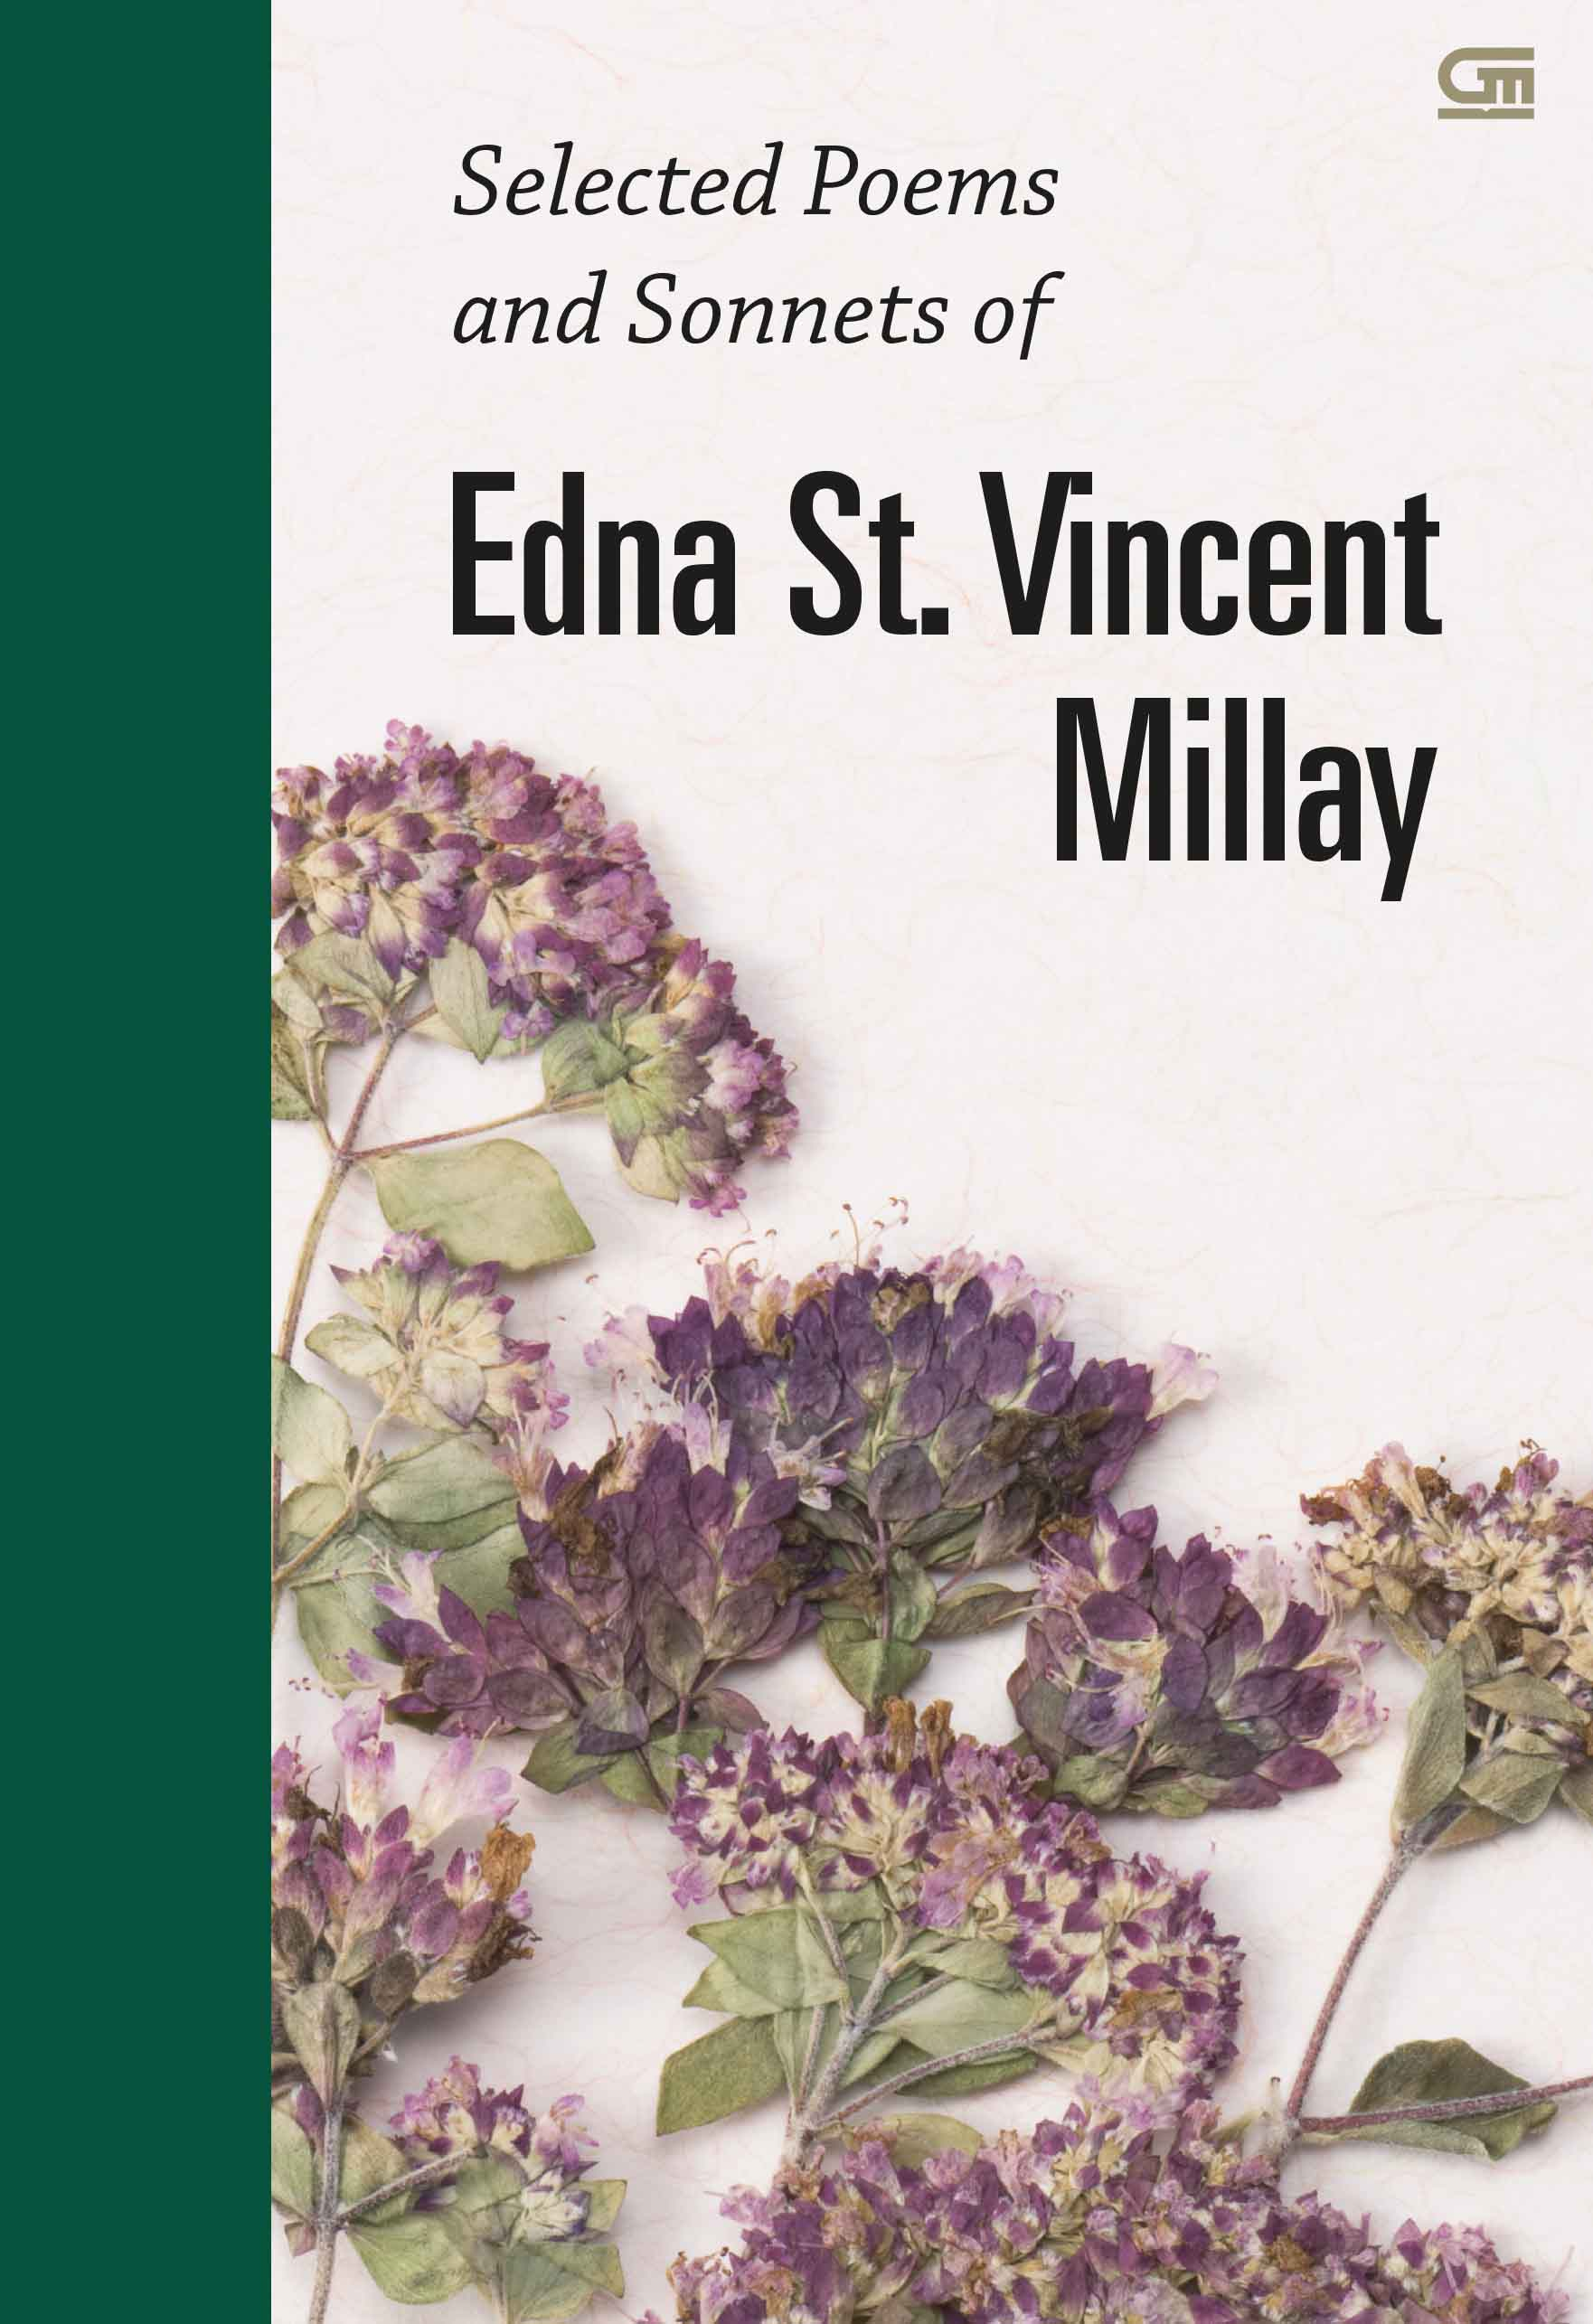 Selected Poems and Sonnets of Edna St. Vincent Millay